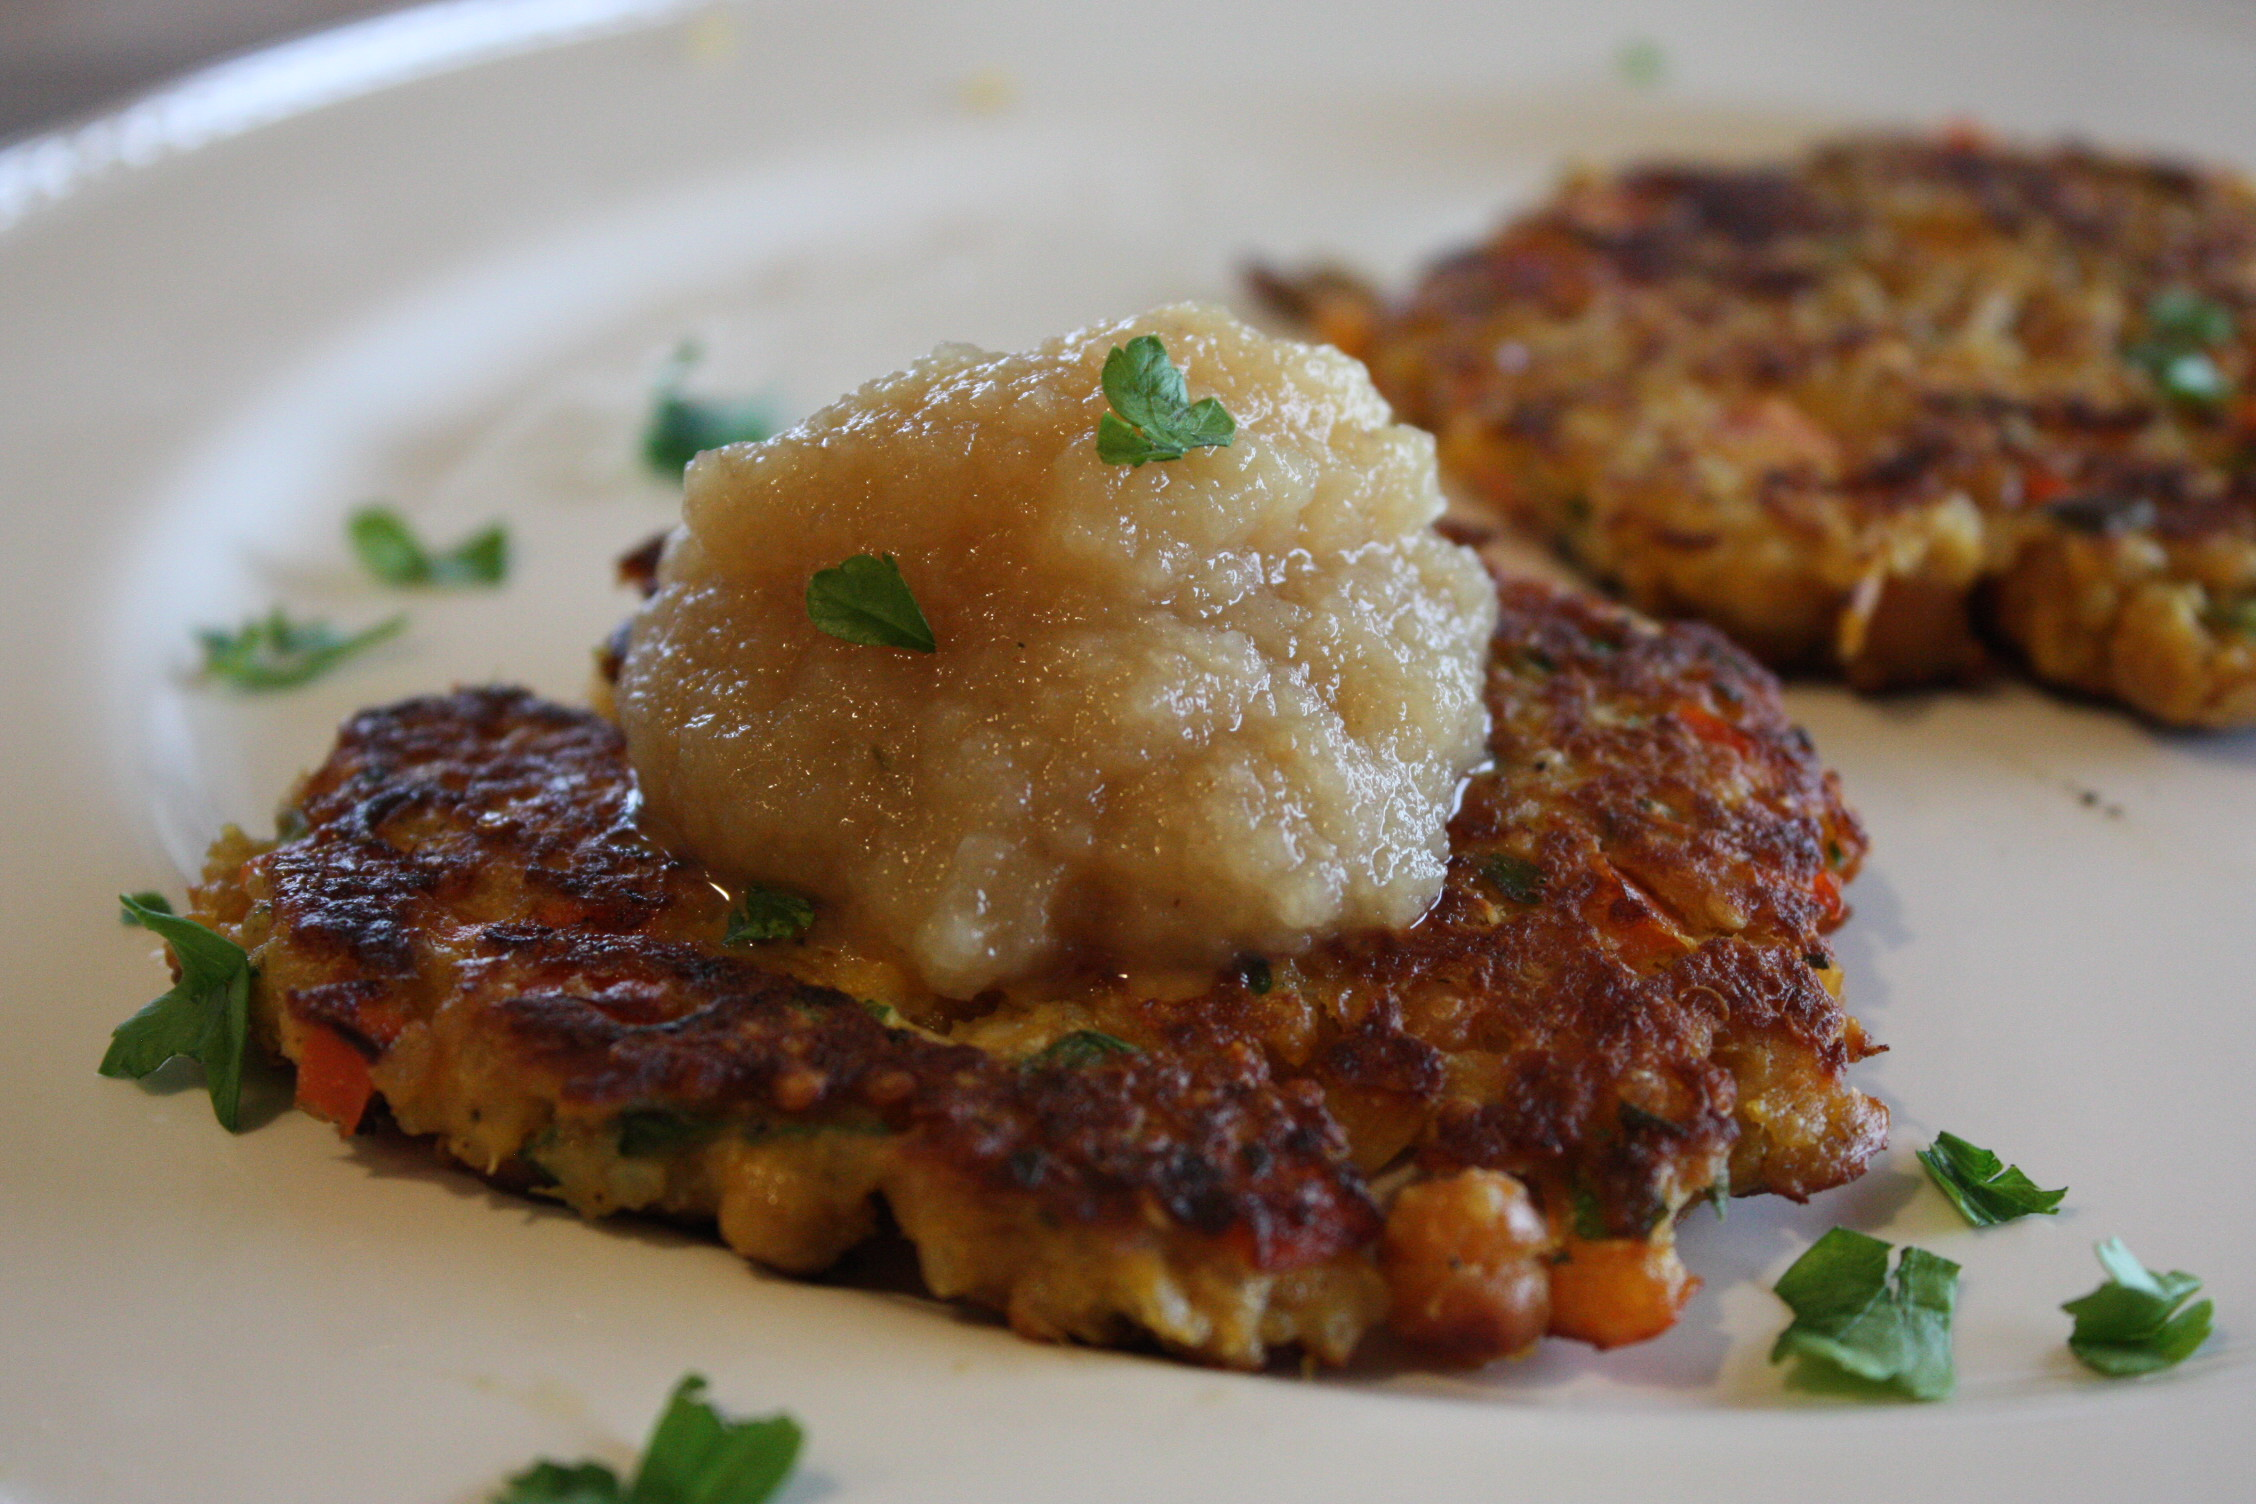 veggie pancakes topped with apple sauce